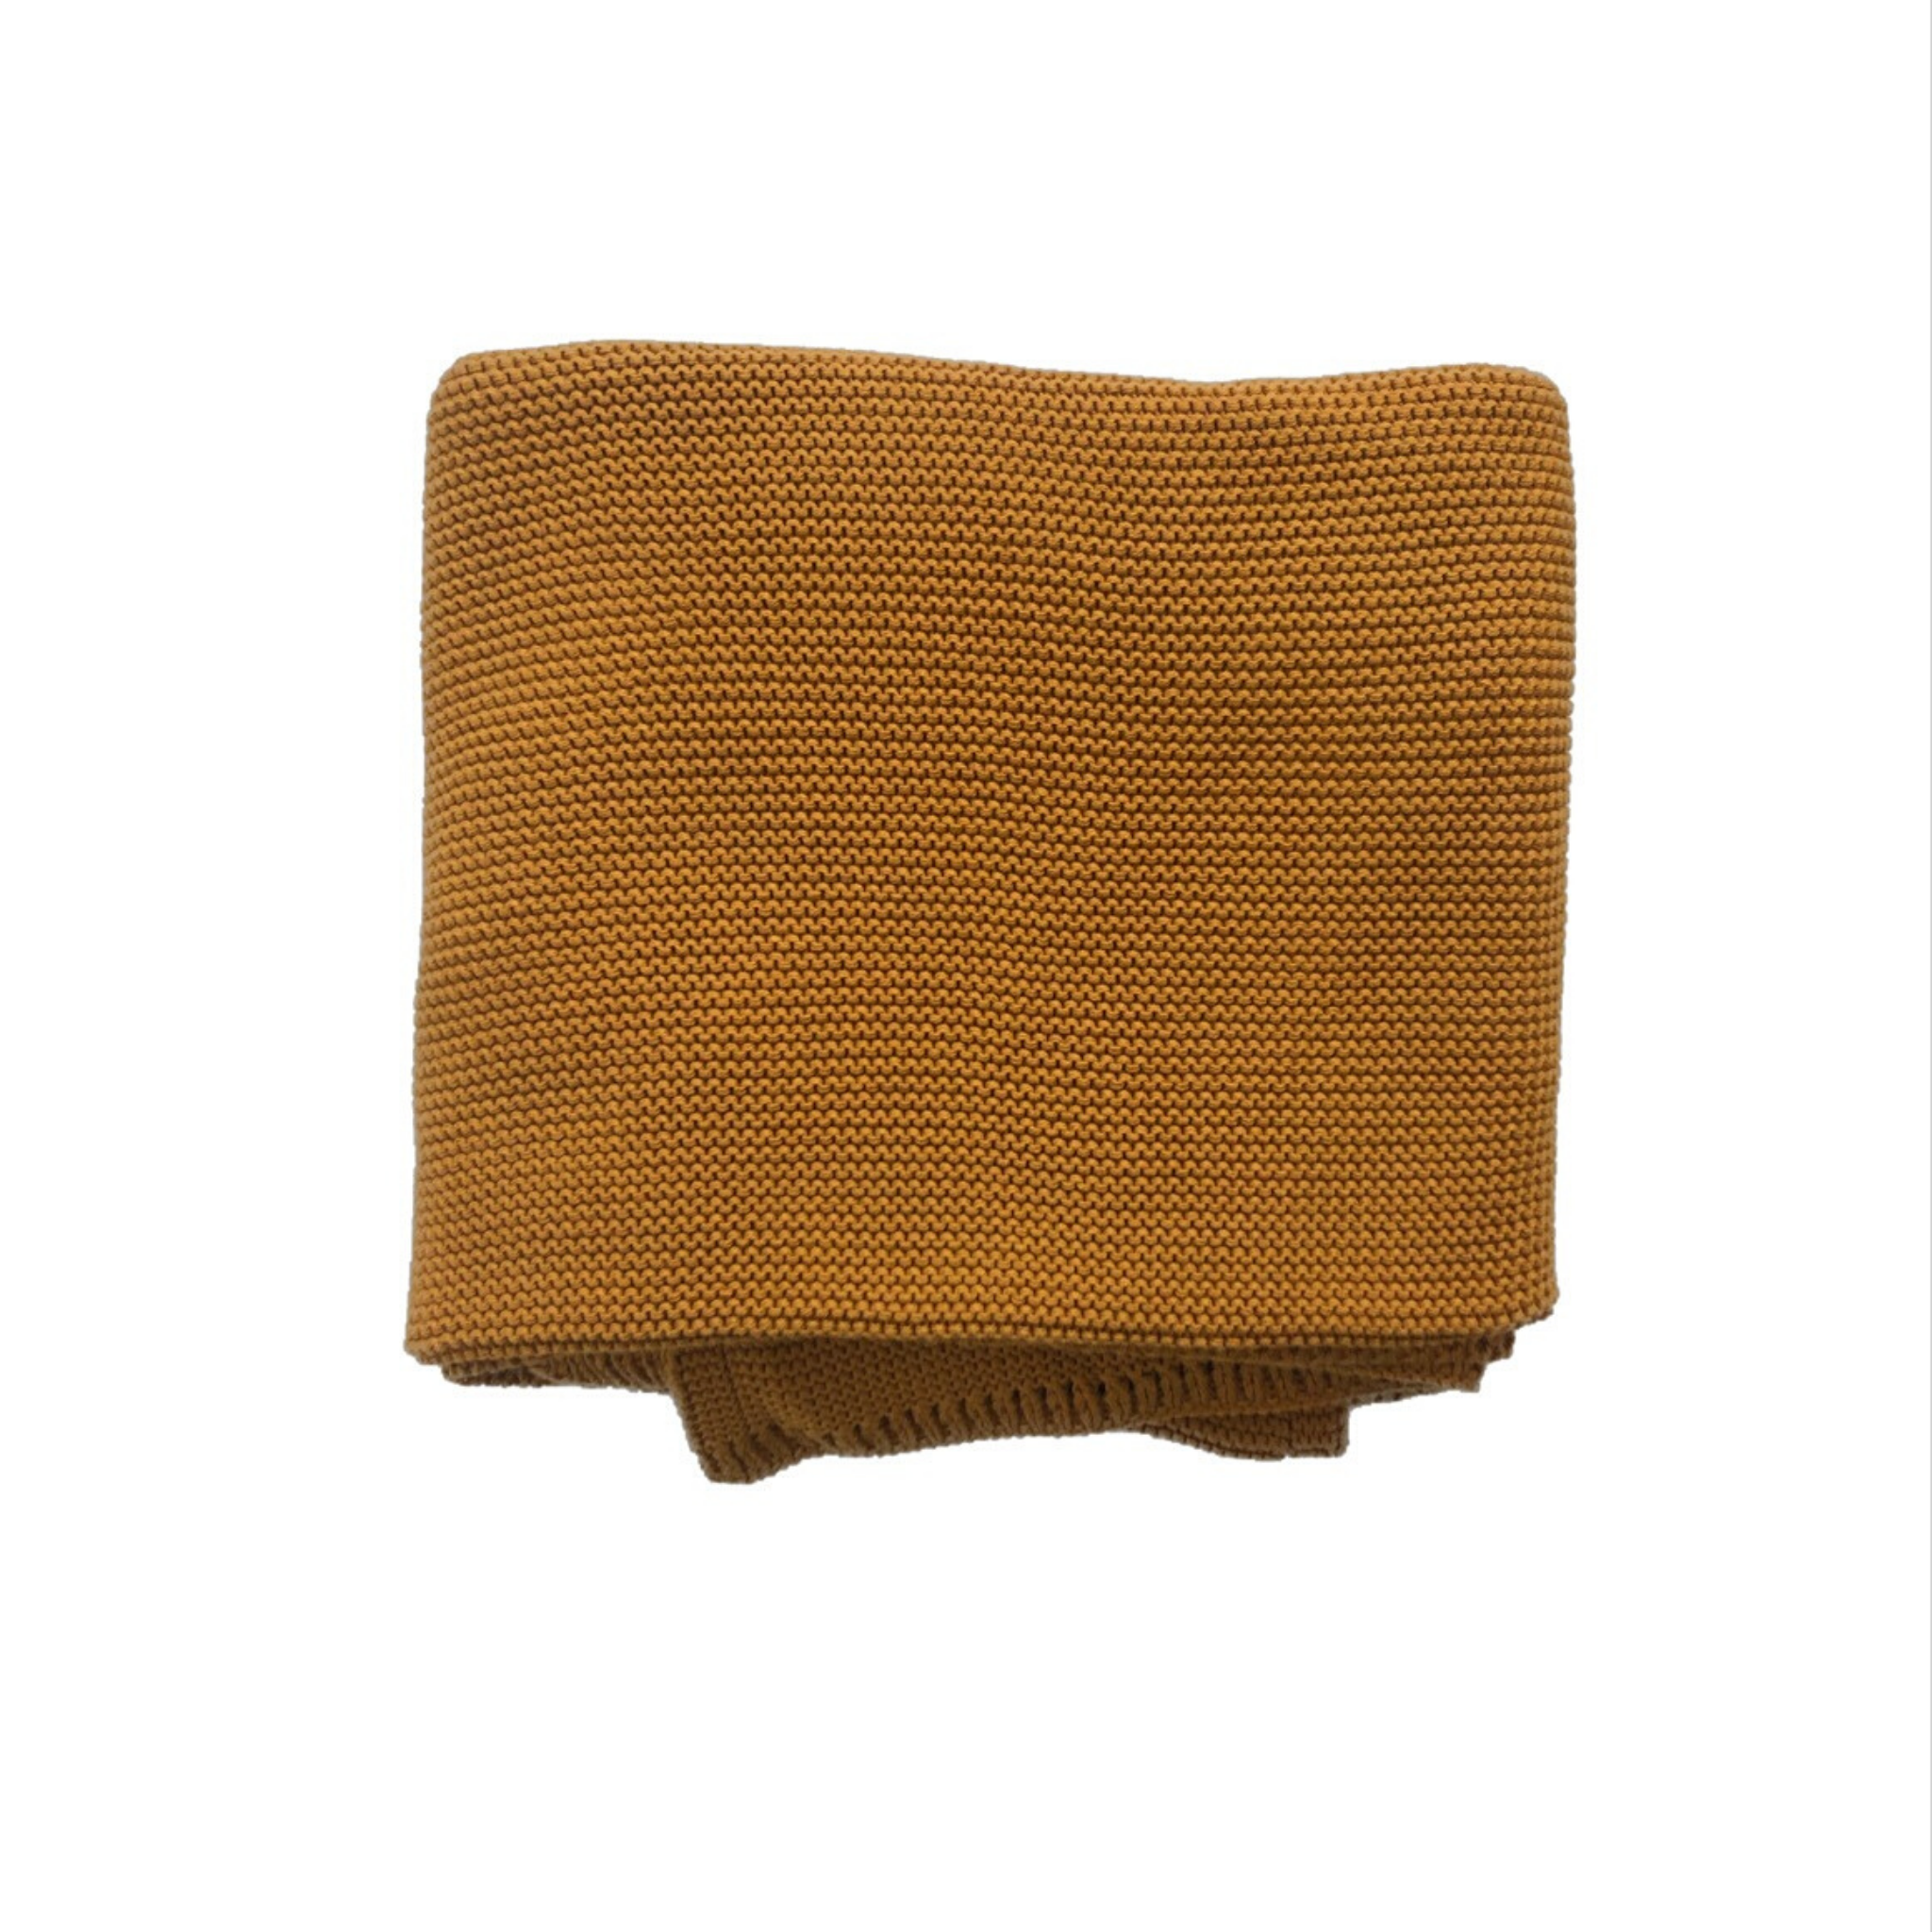 MINI & ME - Cable Knit Baby Blanket | Mustard